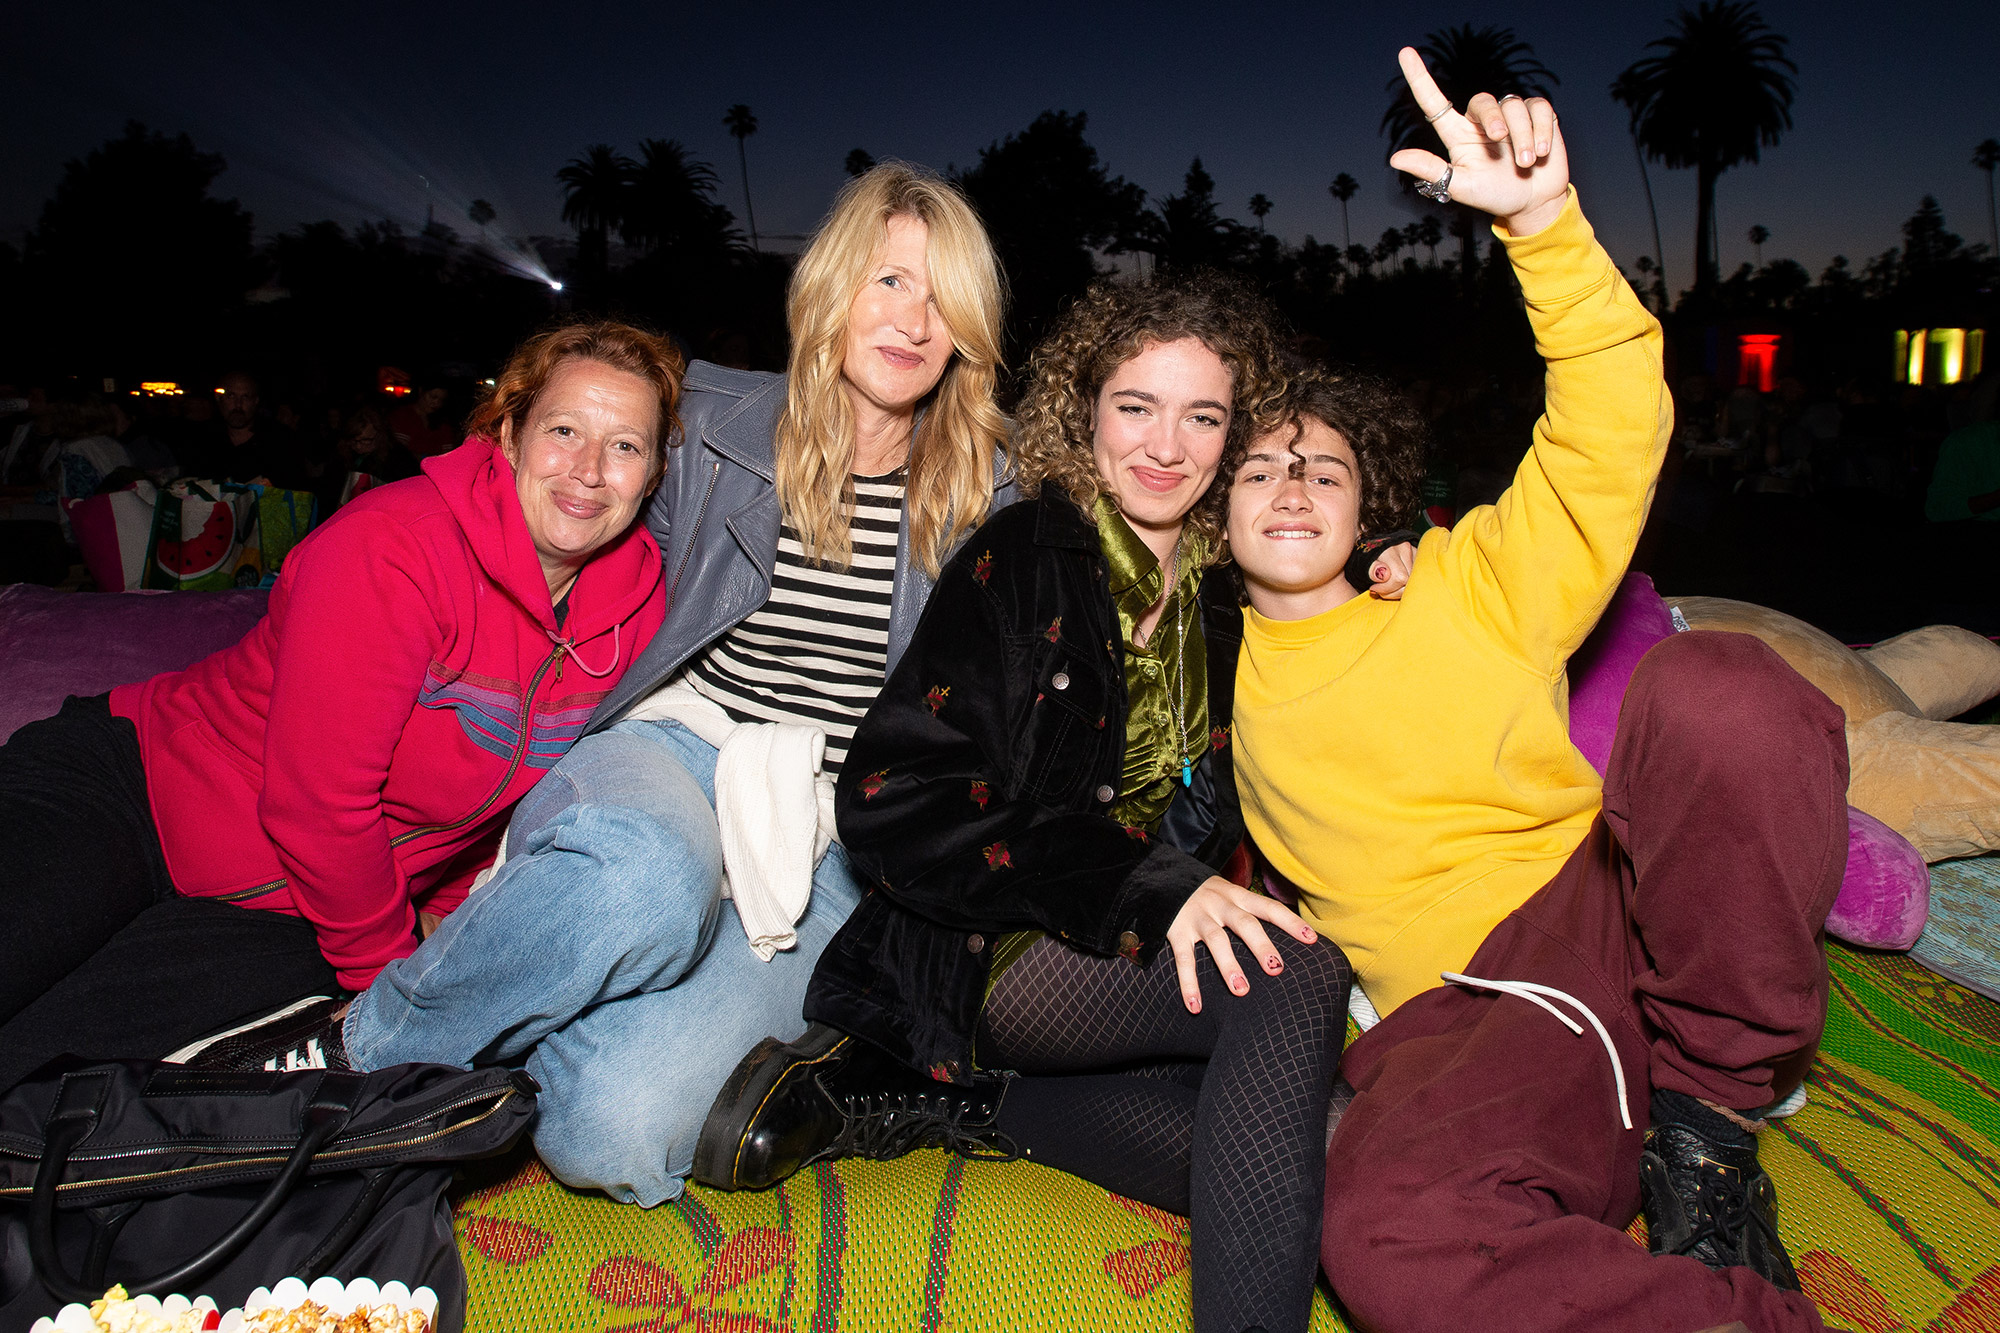 Laura Dern and her daughter Jaya Harper joined by Noah Jupe and his mother Katy Cavanagh.